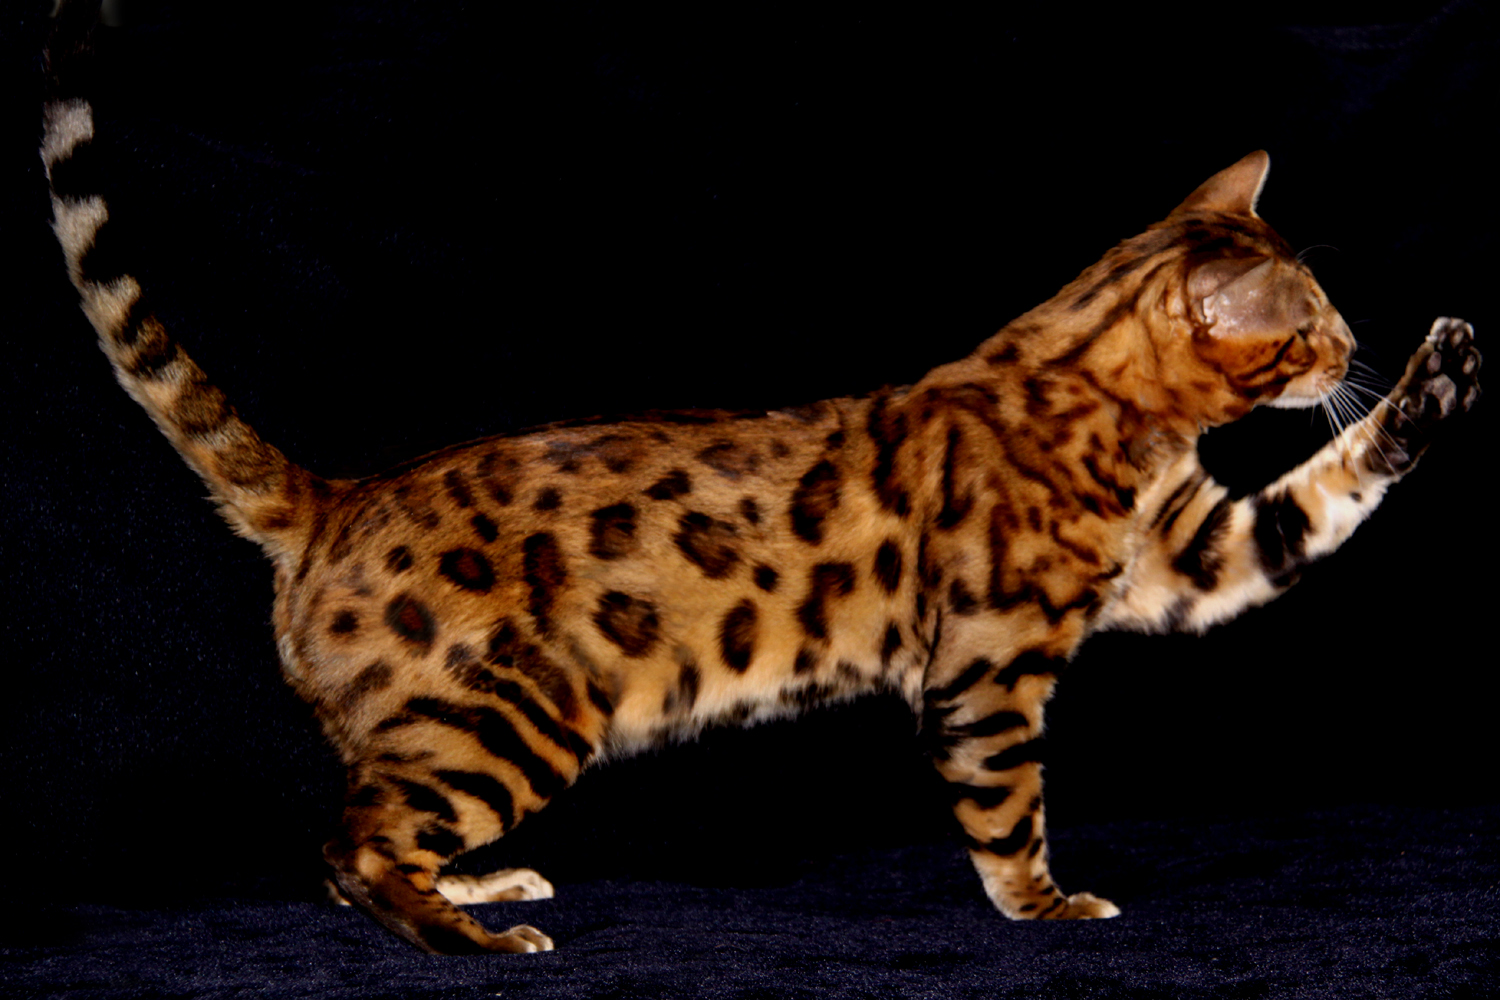 Bengal Cats - Pets Cute and Docile